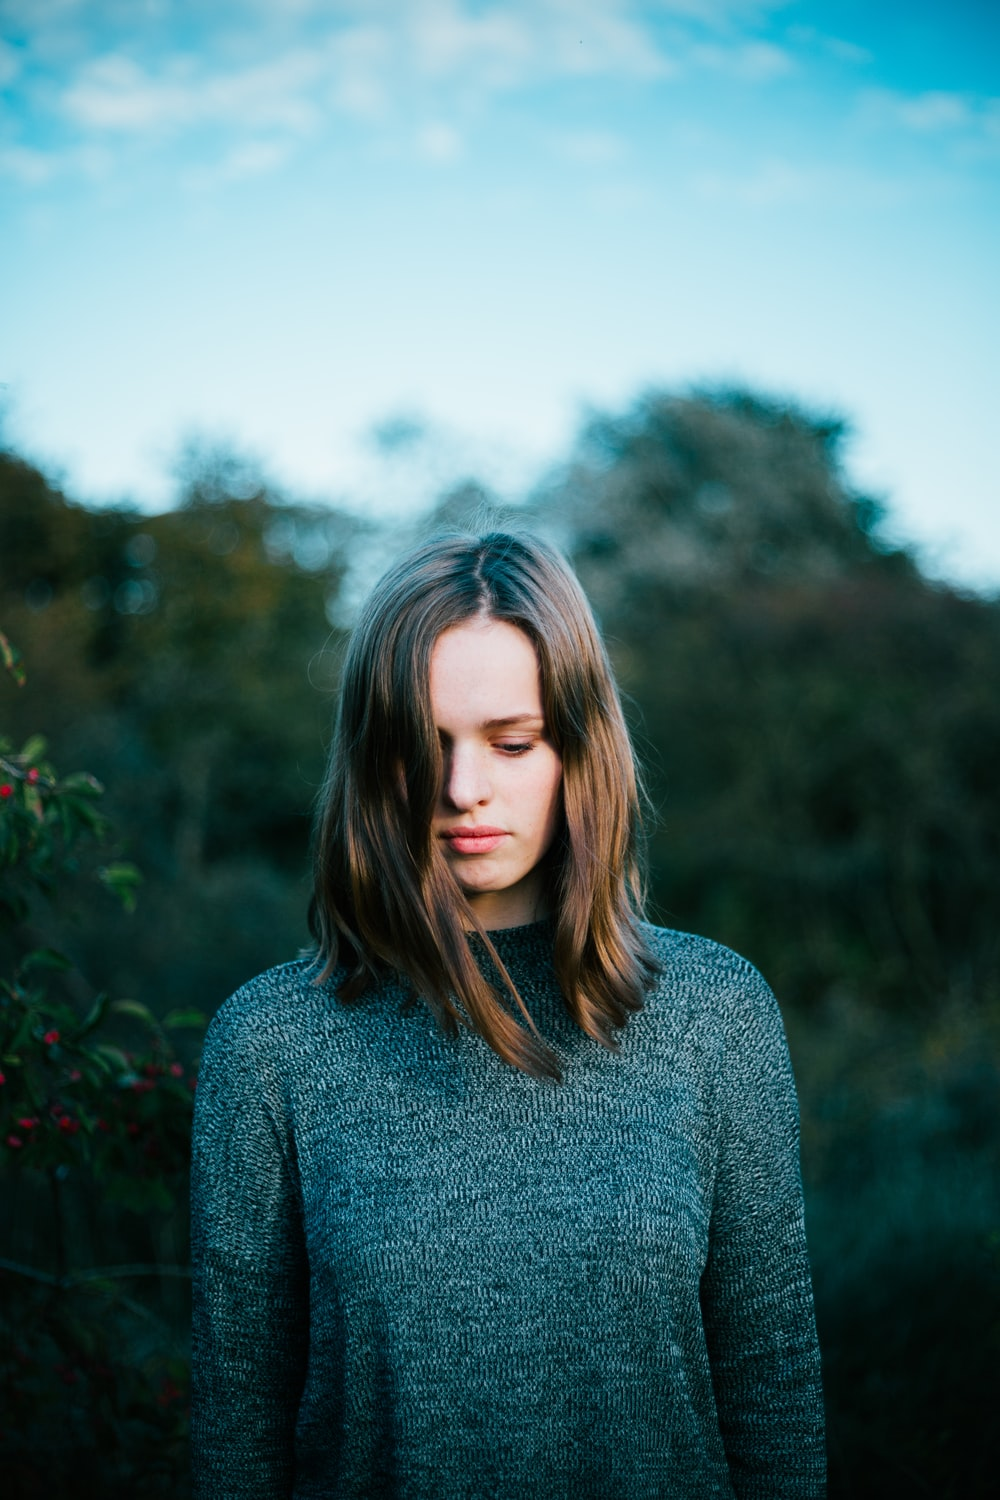 woman wearing gray knitted sweater